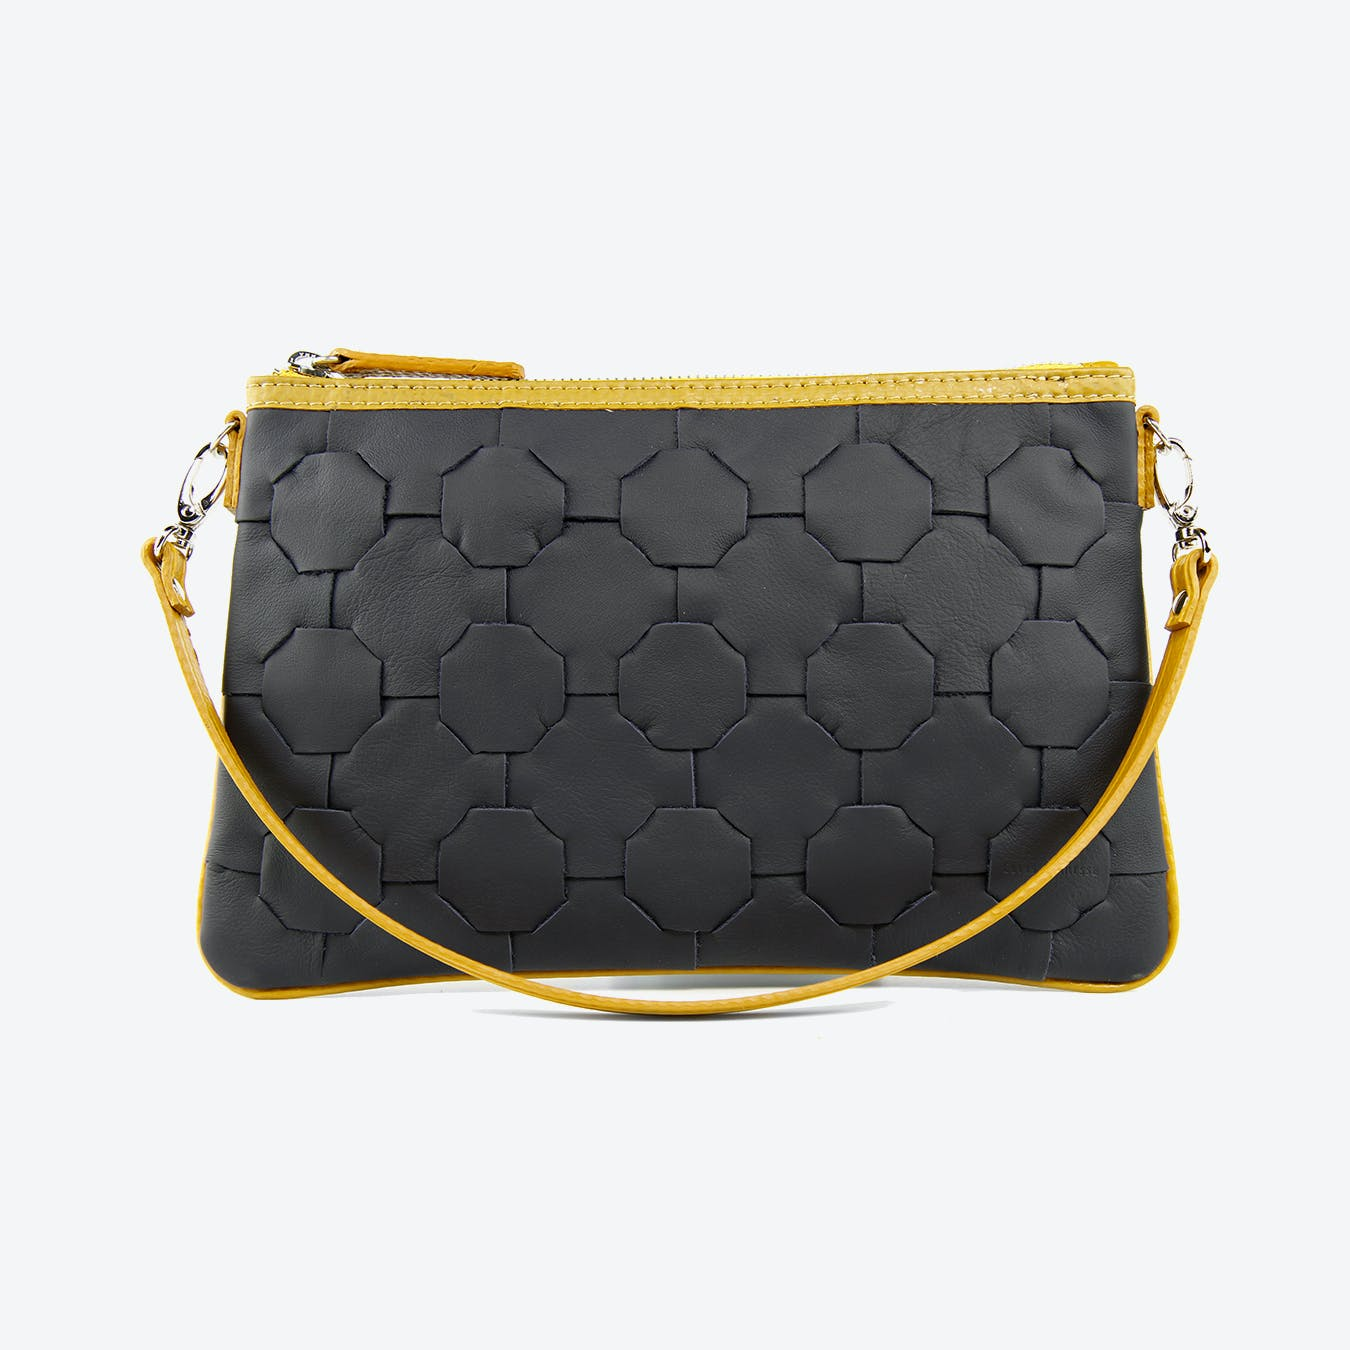 Fire & Hide Clutch Bag in Navy Blue Burberry Leather & Yellow Fire-Hoses